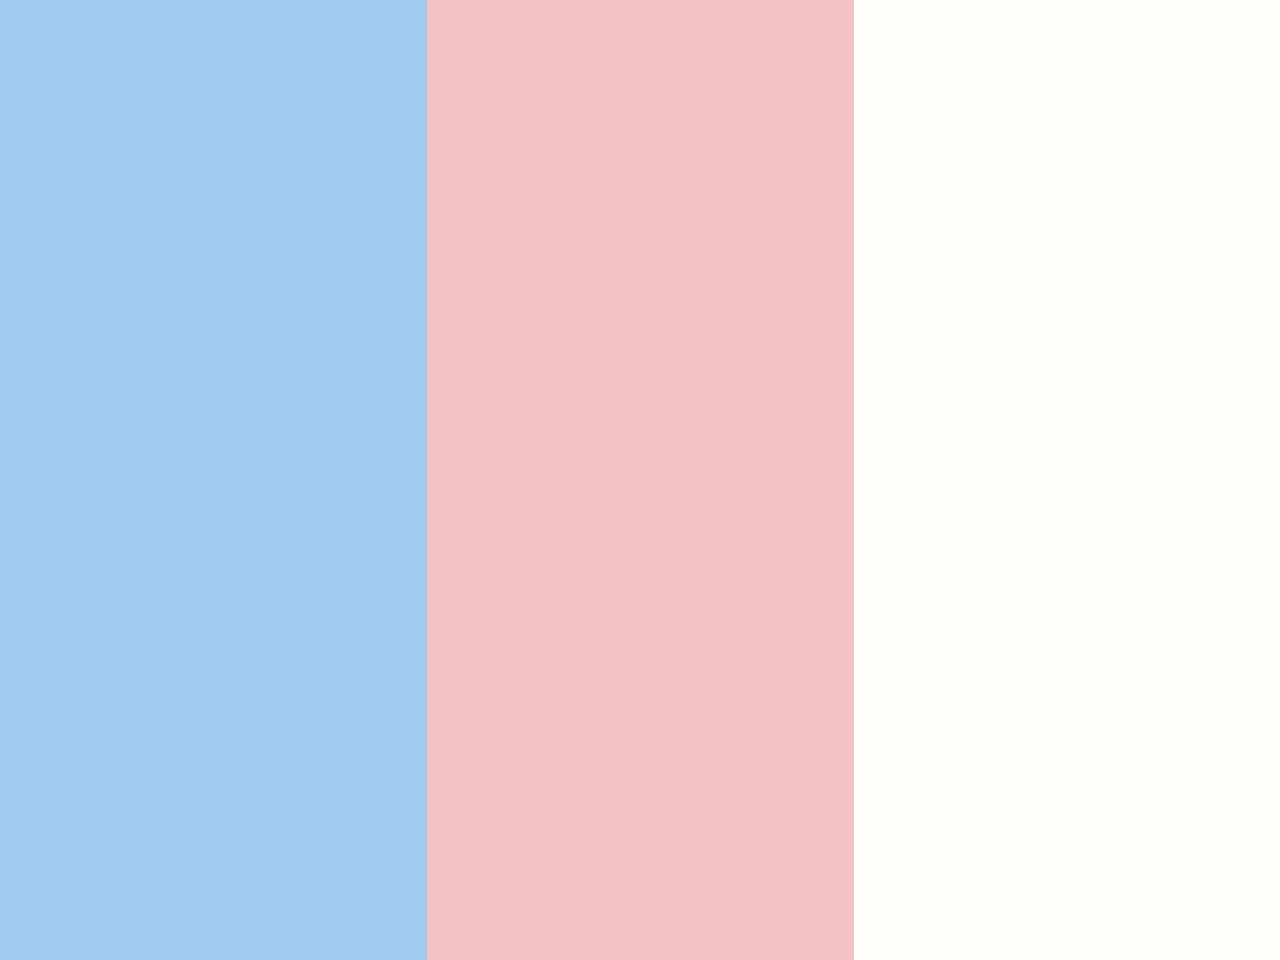 Baby Blue Eyes Baby Pink and Baby Powder Three Color Background 1280x960